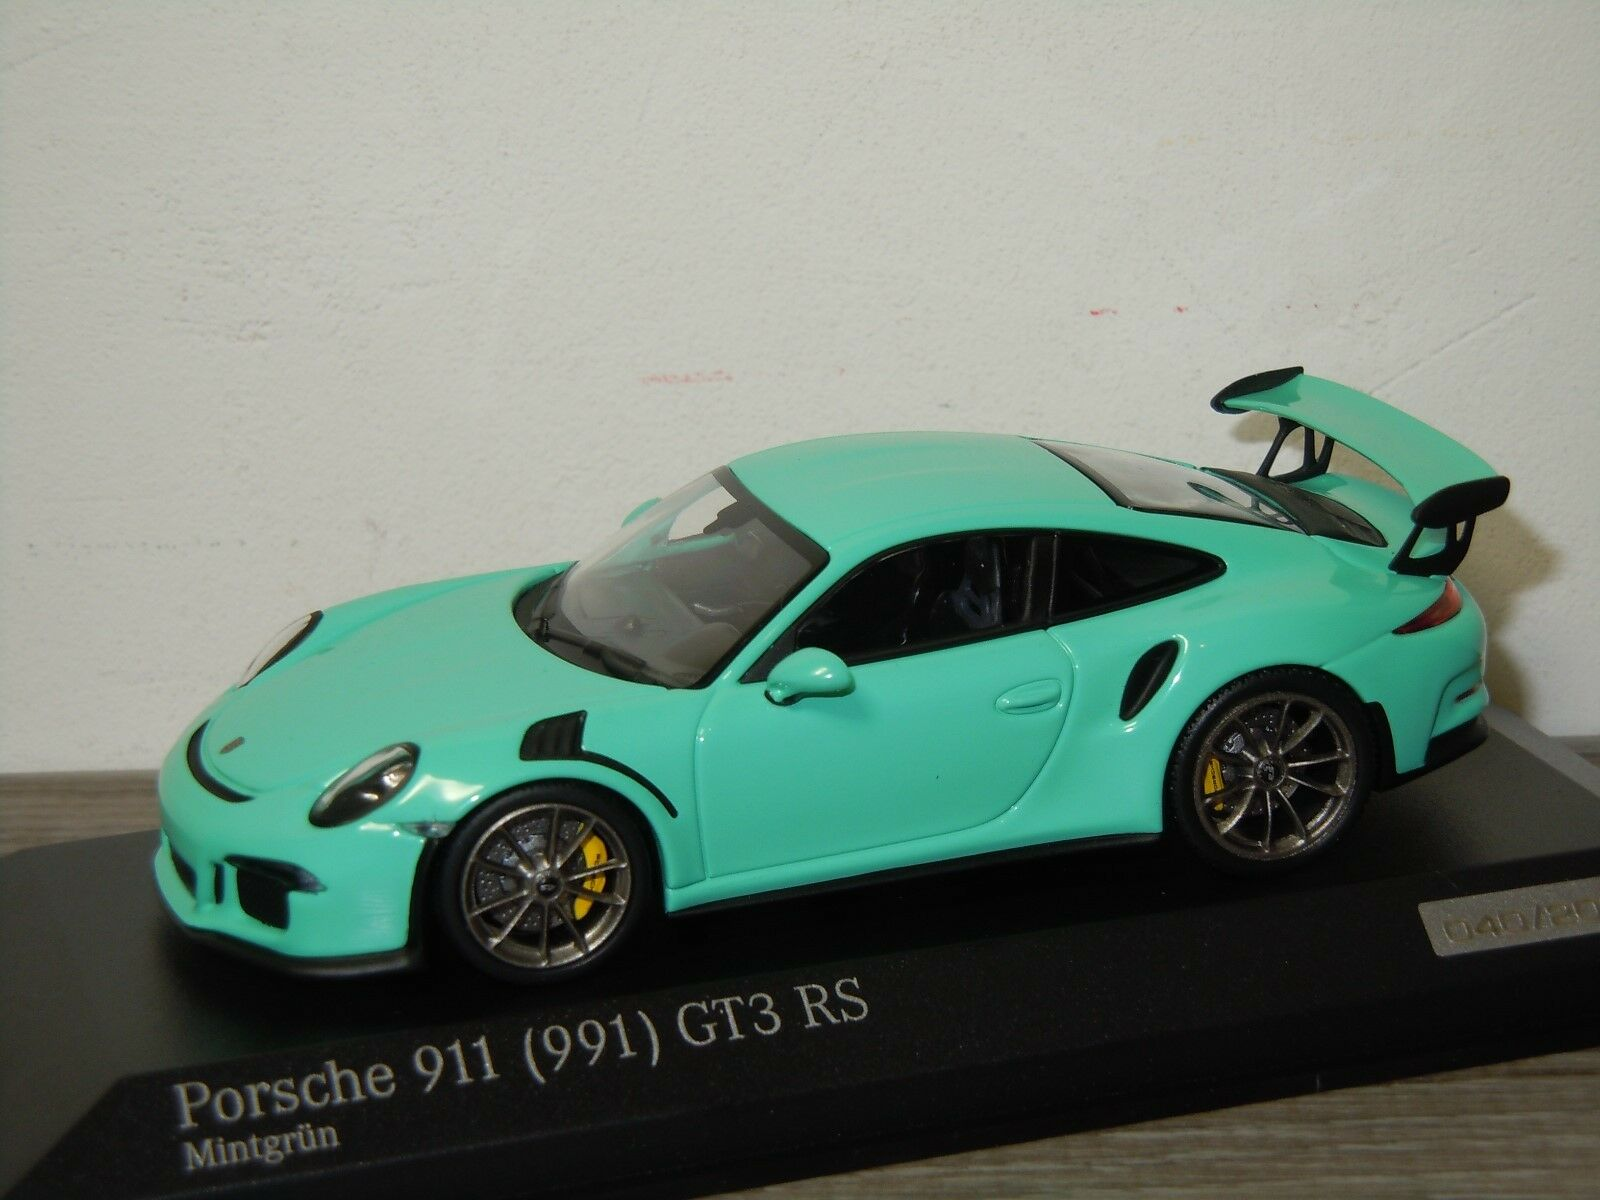 Porsche 911 991 GT3 RS - Minichamps 1 43 in Box 30568